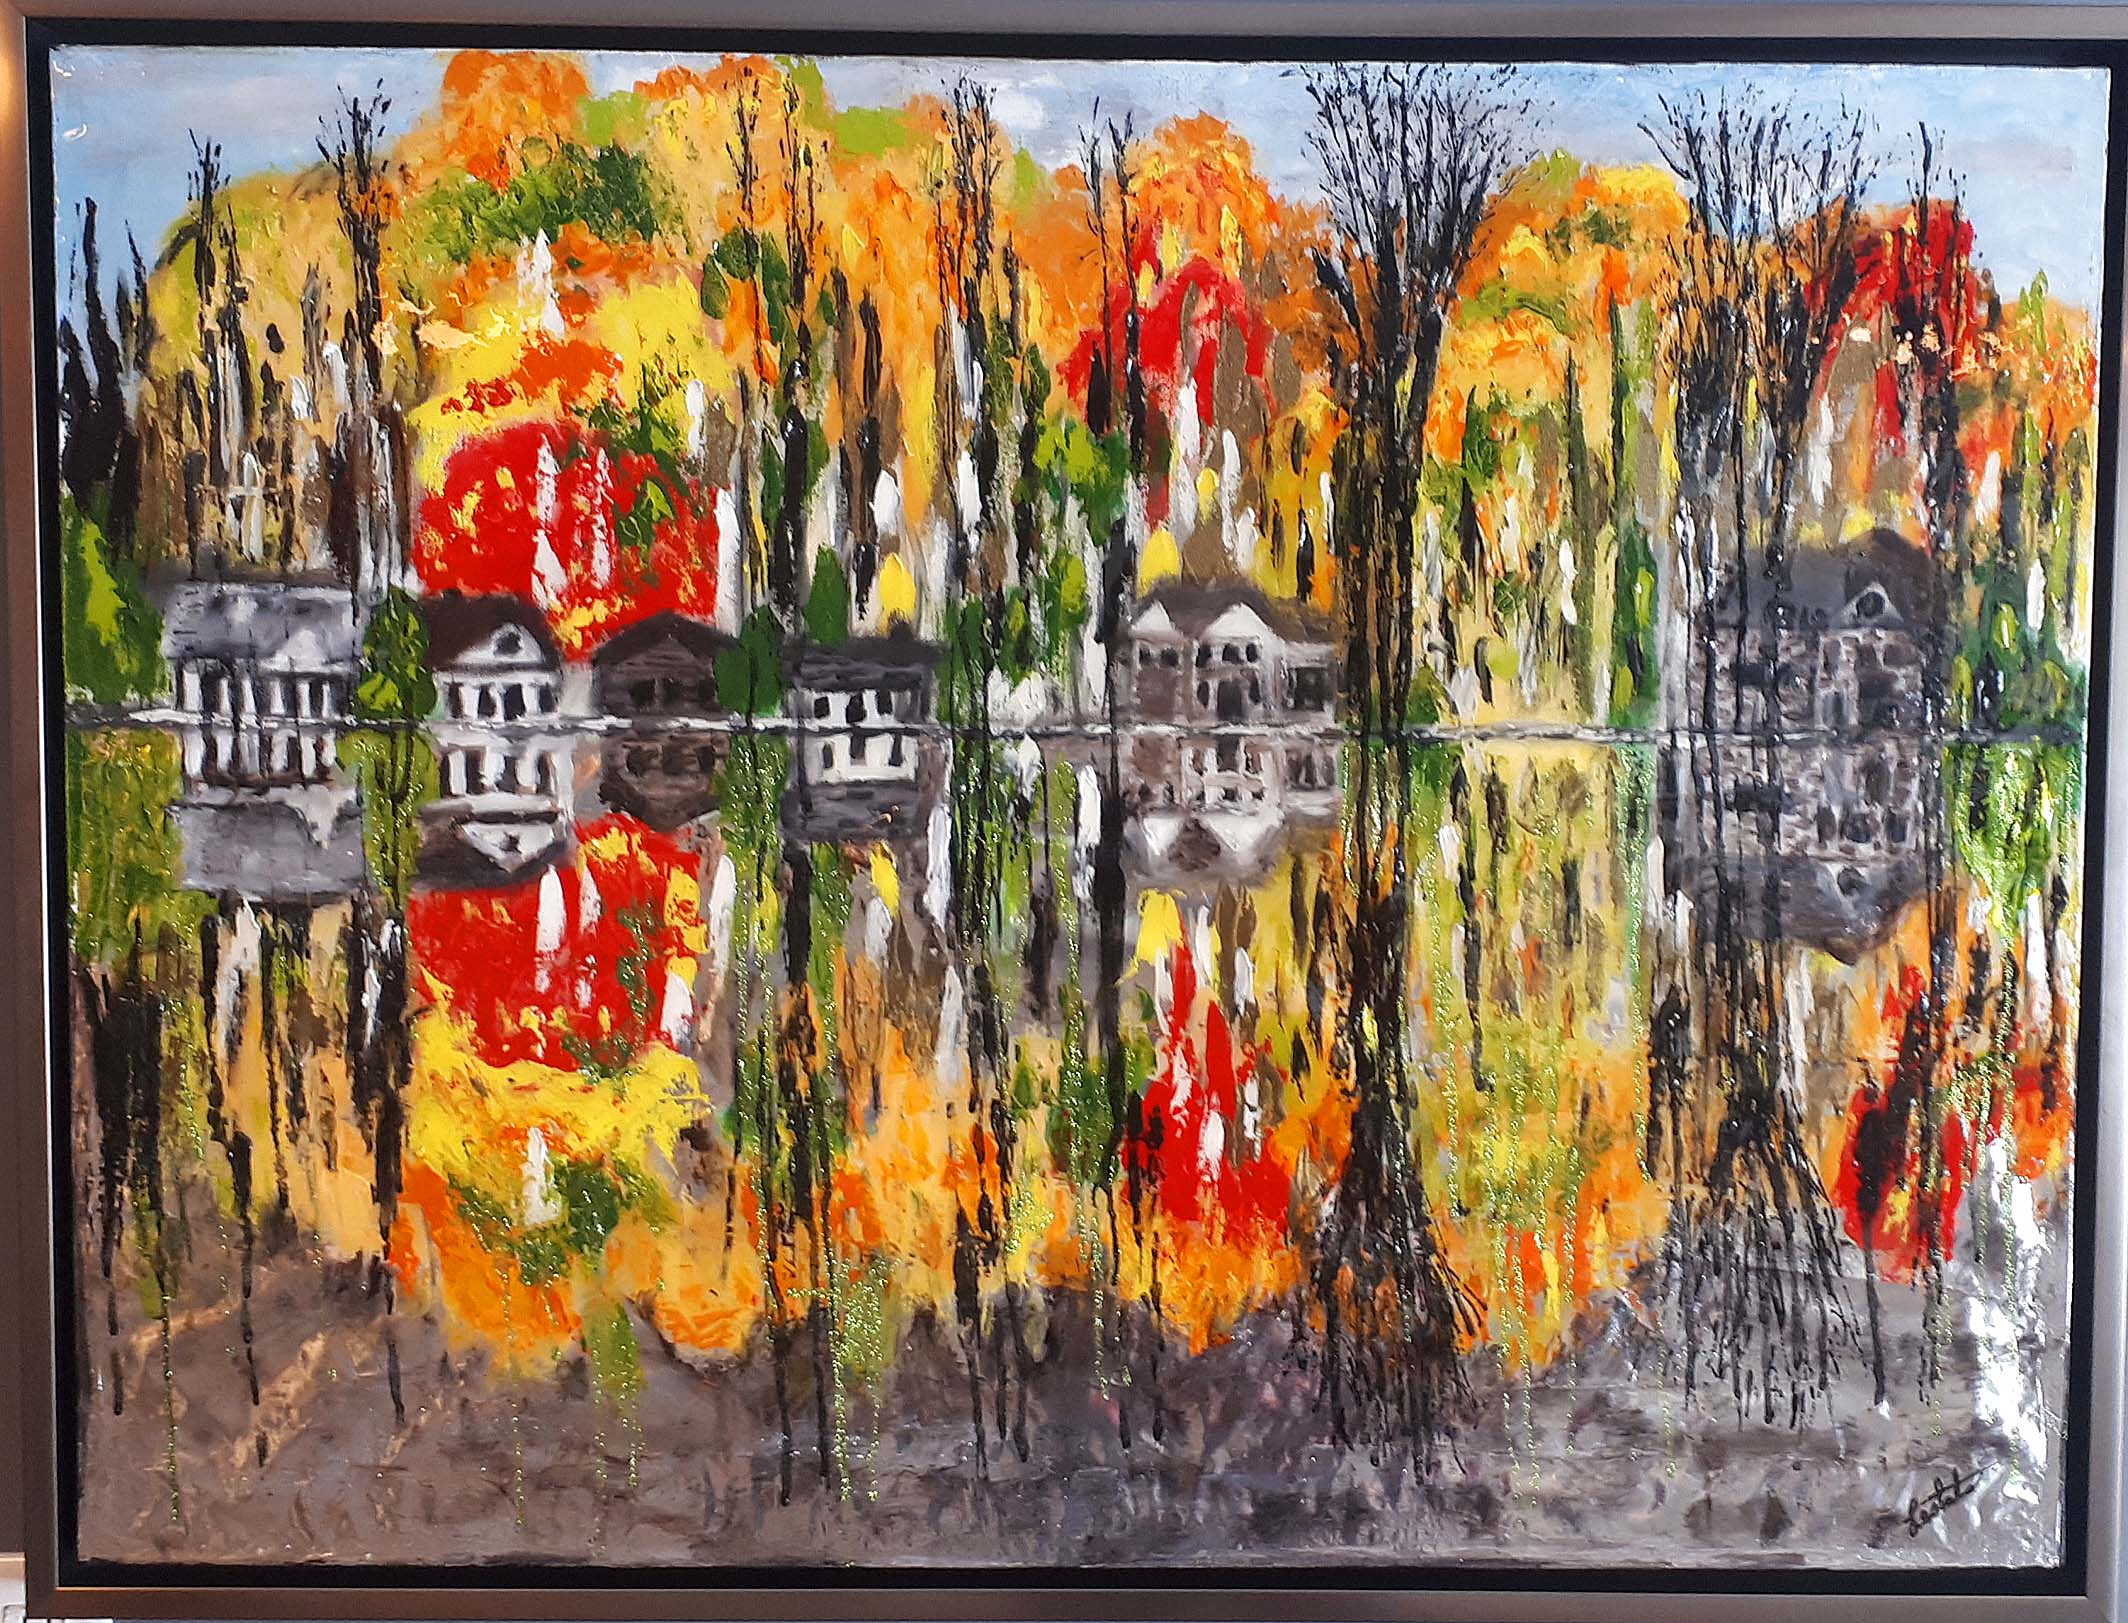 Nathalie Lesbats (Quebec) Acrylic on Foil, Size: 42 x 32, Price: 650.00